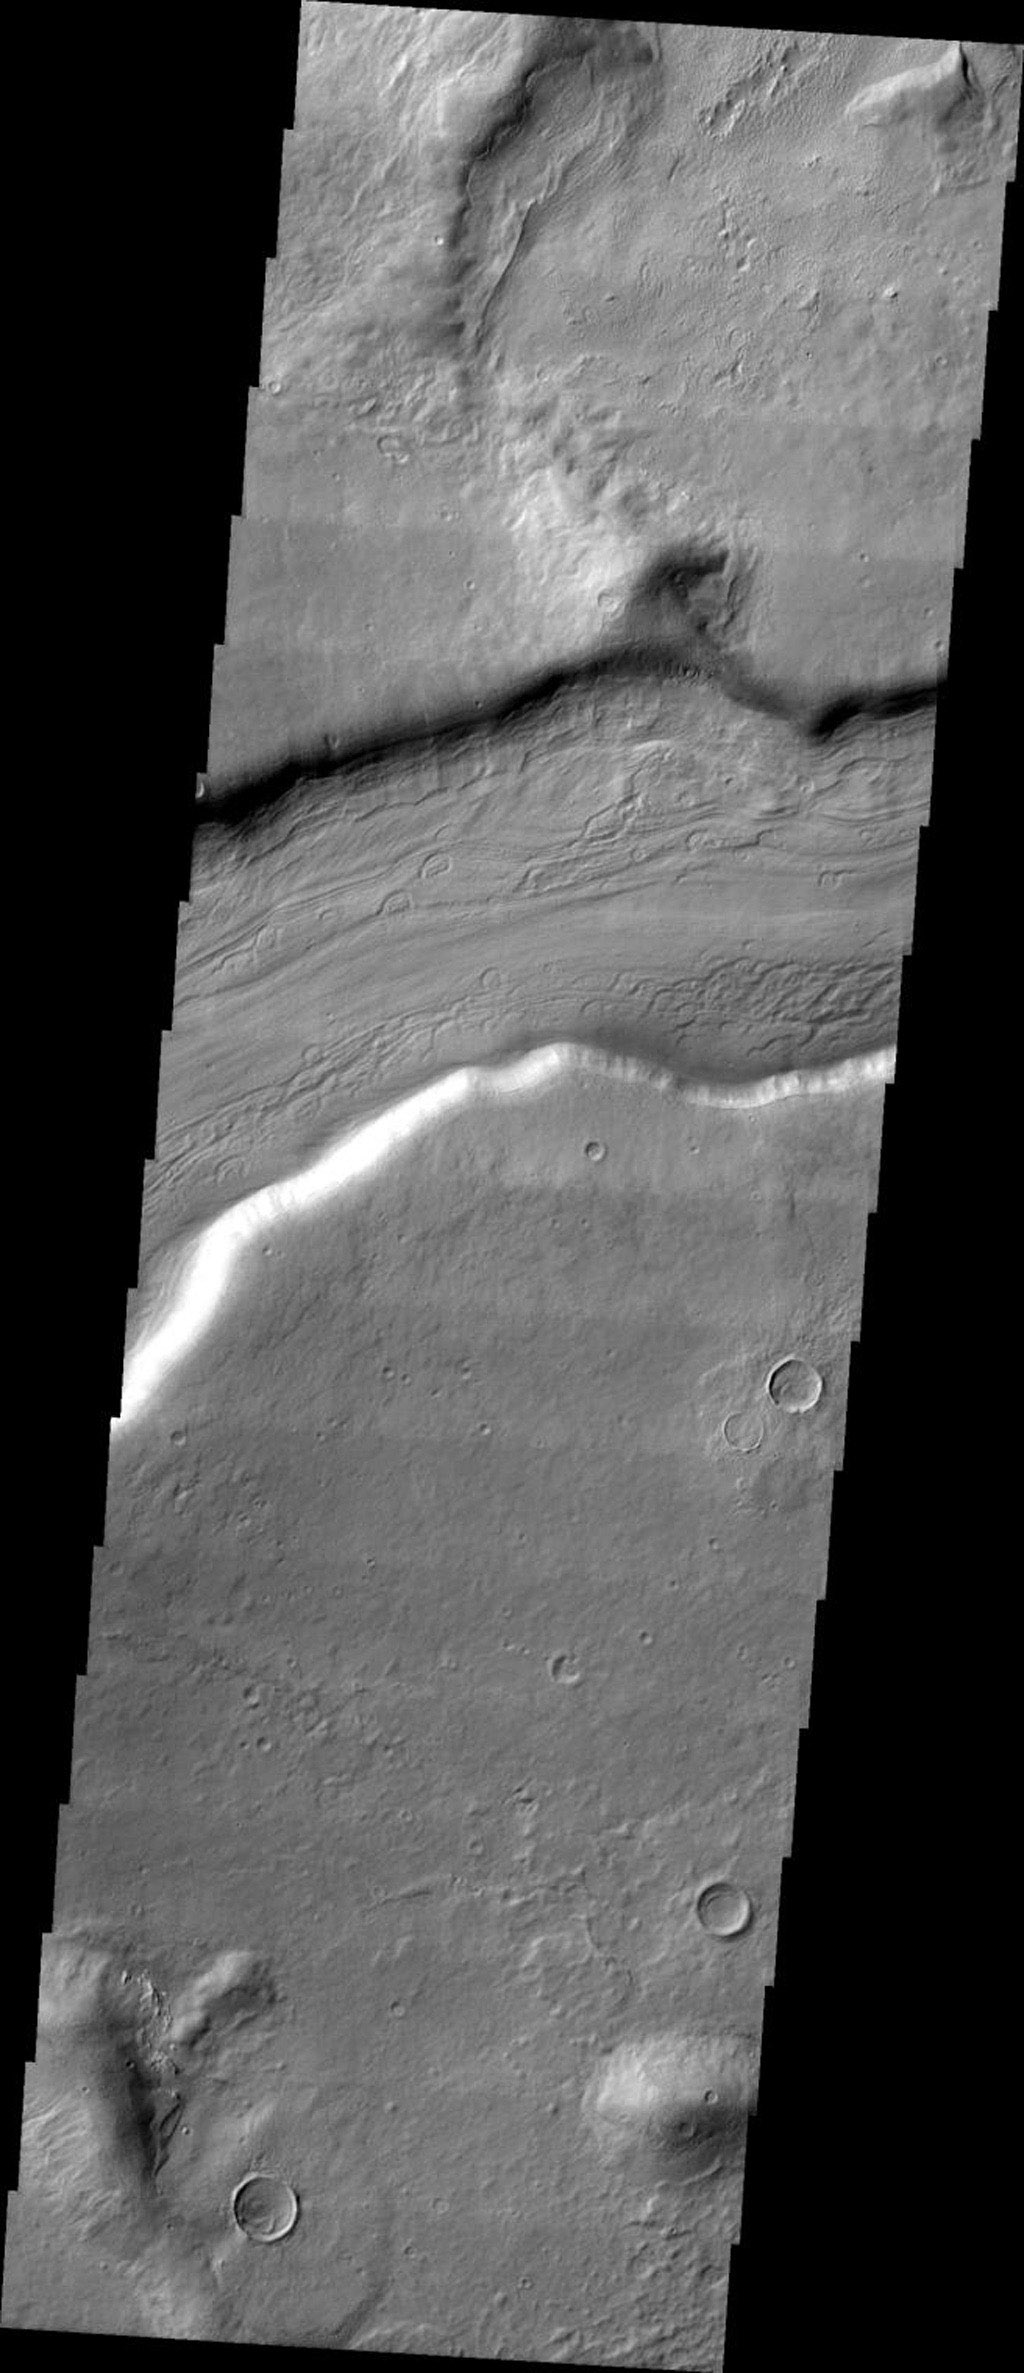 This image released on Oct 19, 2004 from NASA's 2001 Mars Odyssey shows Reull Vallis, located in the Martian southern highlands, just east of Hellas Basin.